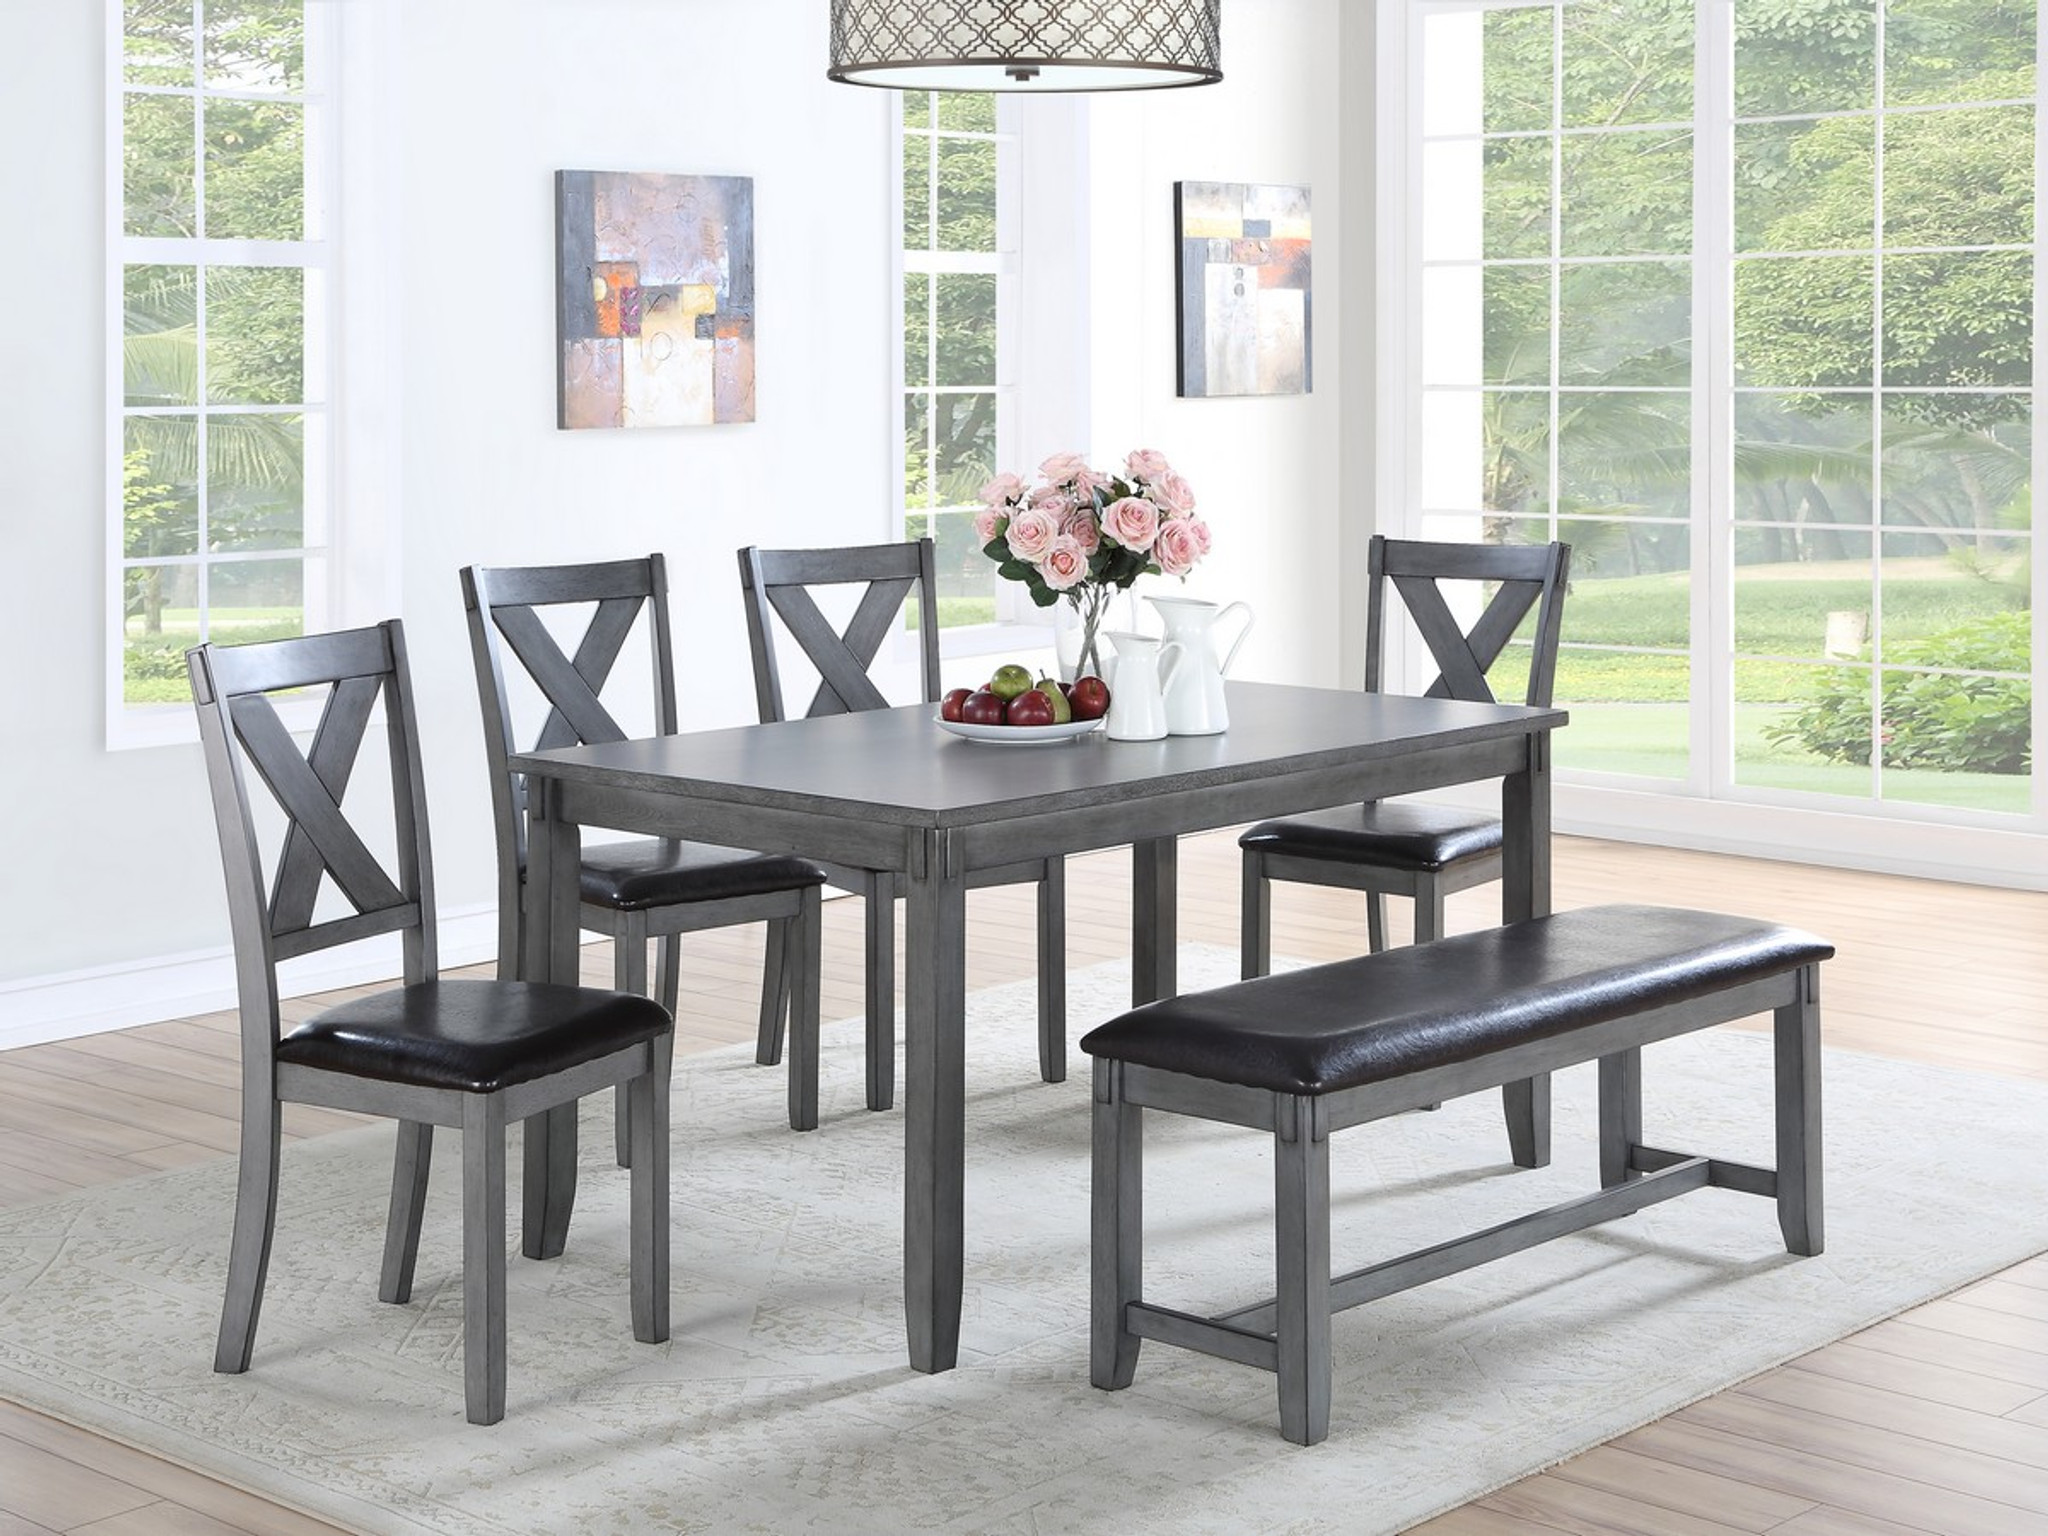 6PCS NAPOLEON DINING TABLE SET IN GREY